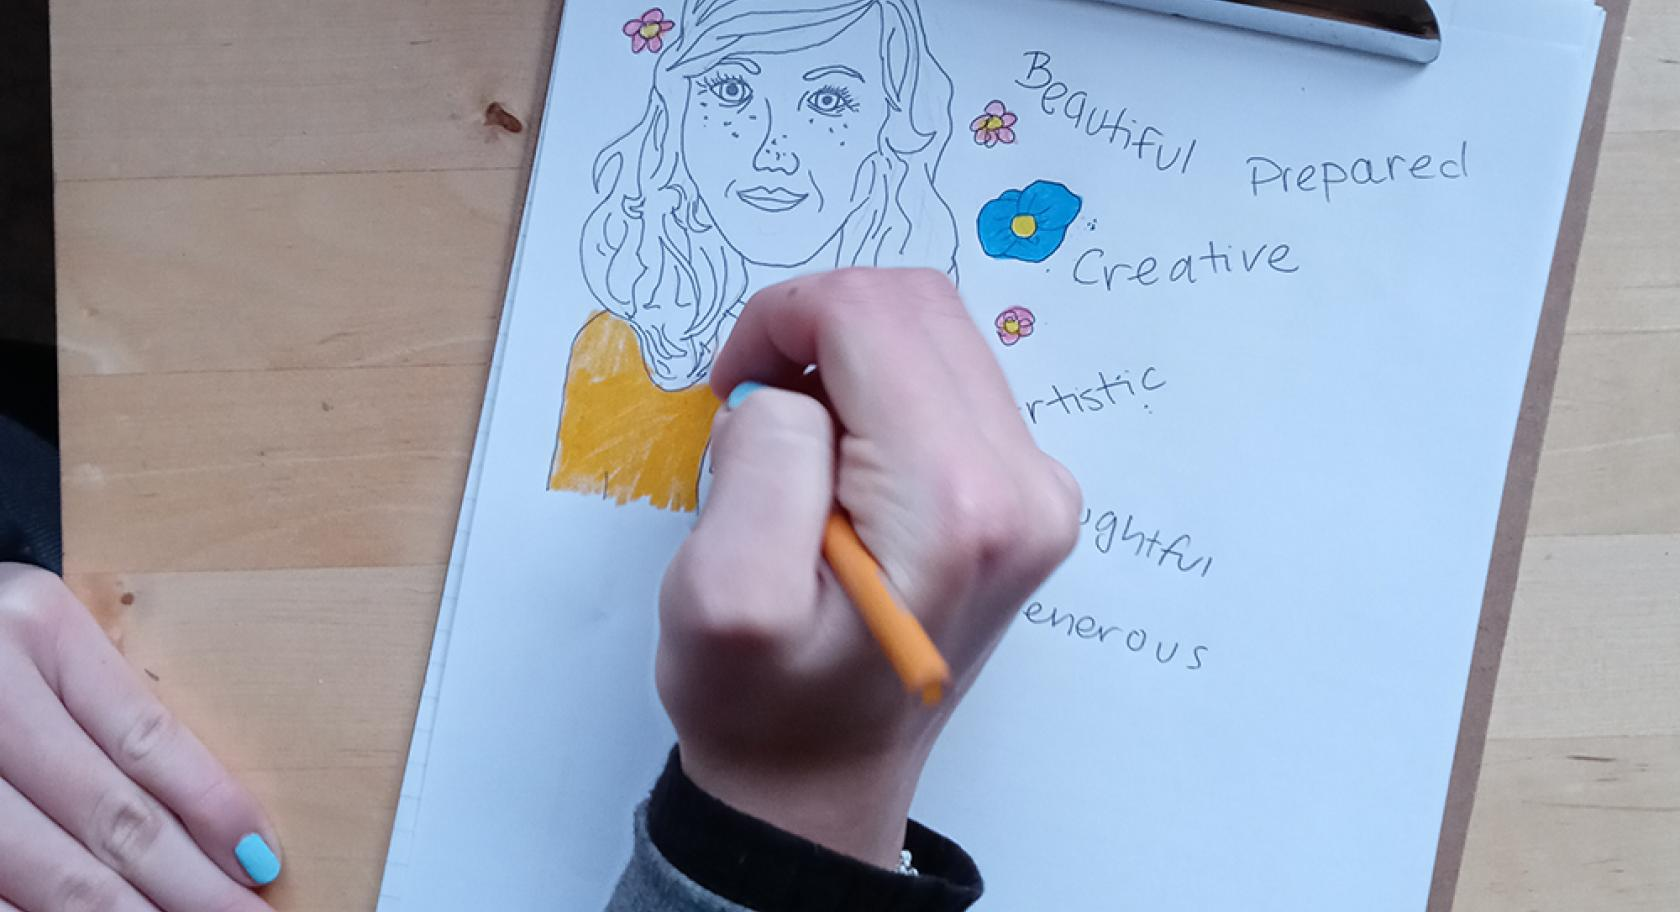 a child's hand holds a yellow pencil drawing on a clipboard. A white piece of paper has a drawing of a black outline of a girl only the shirt is colored yellow